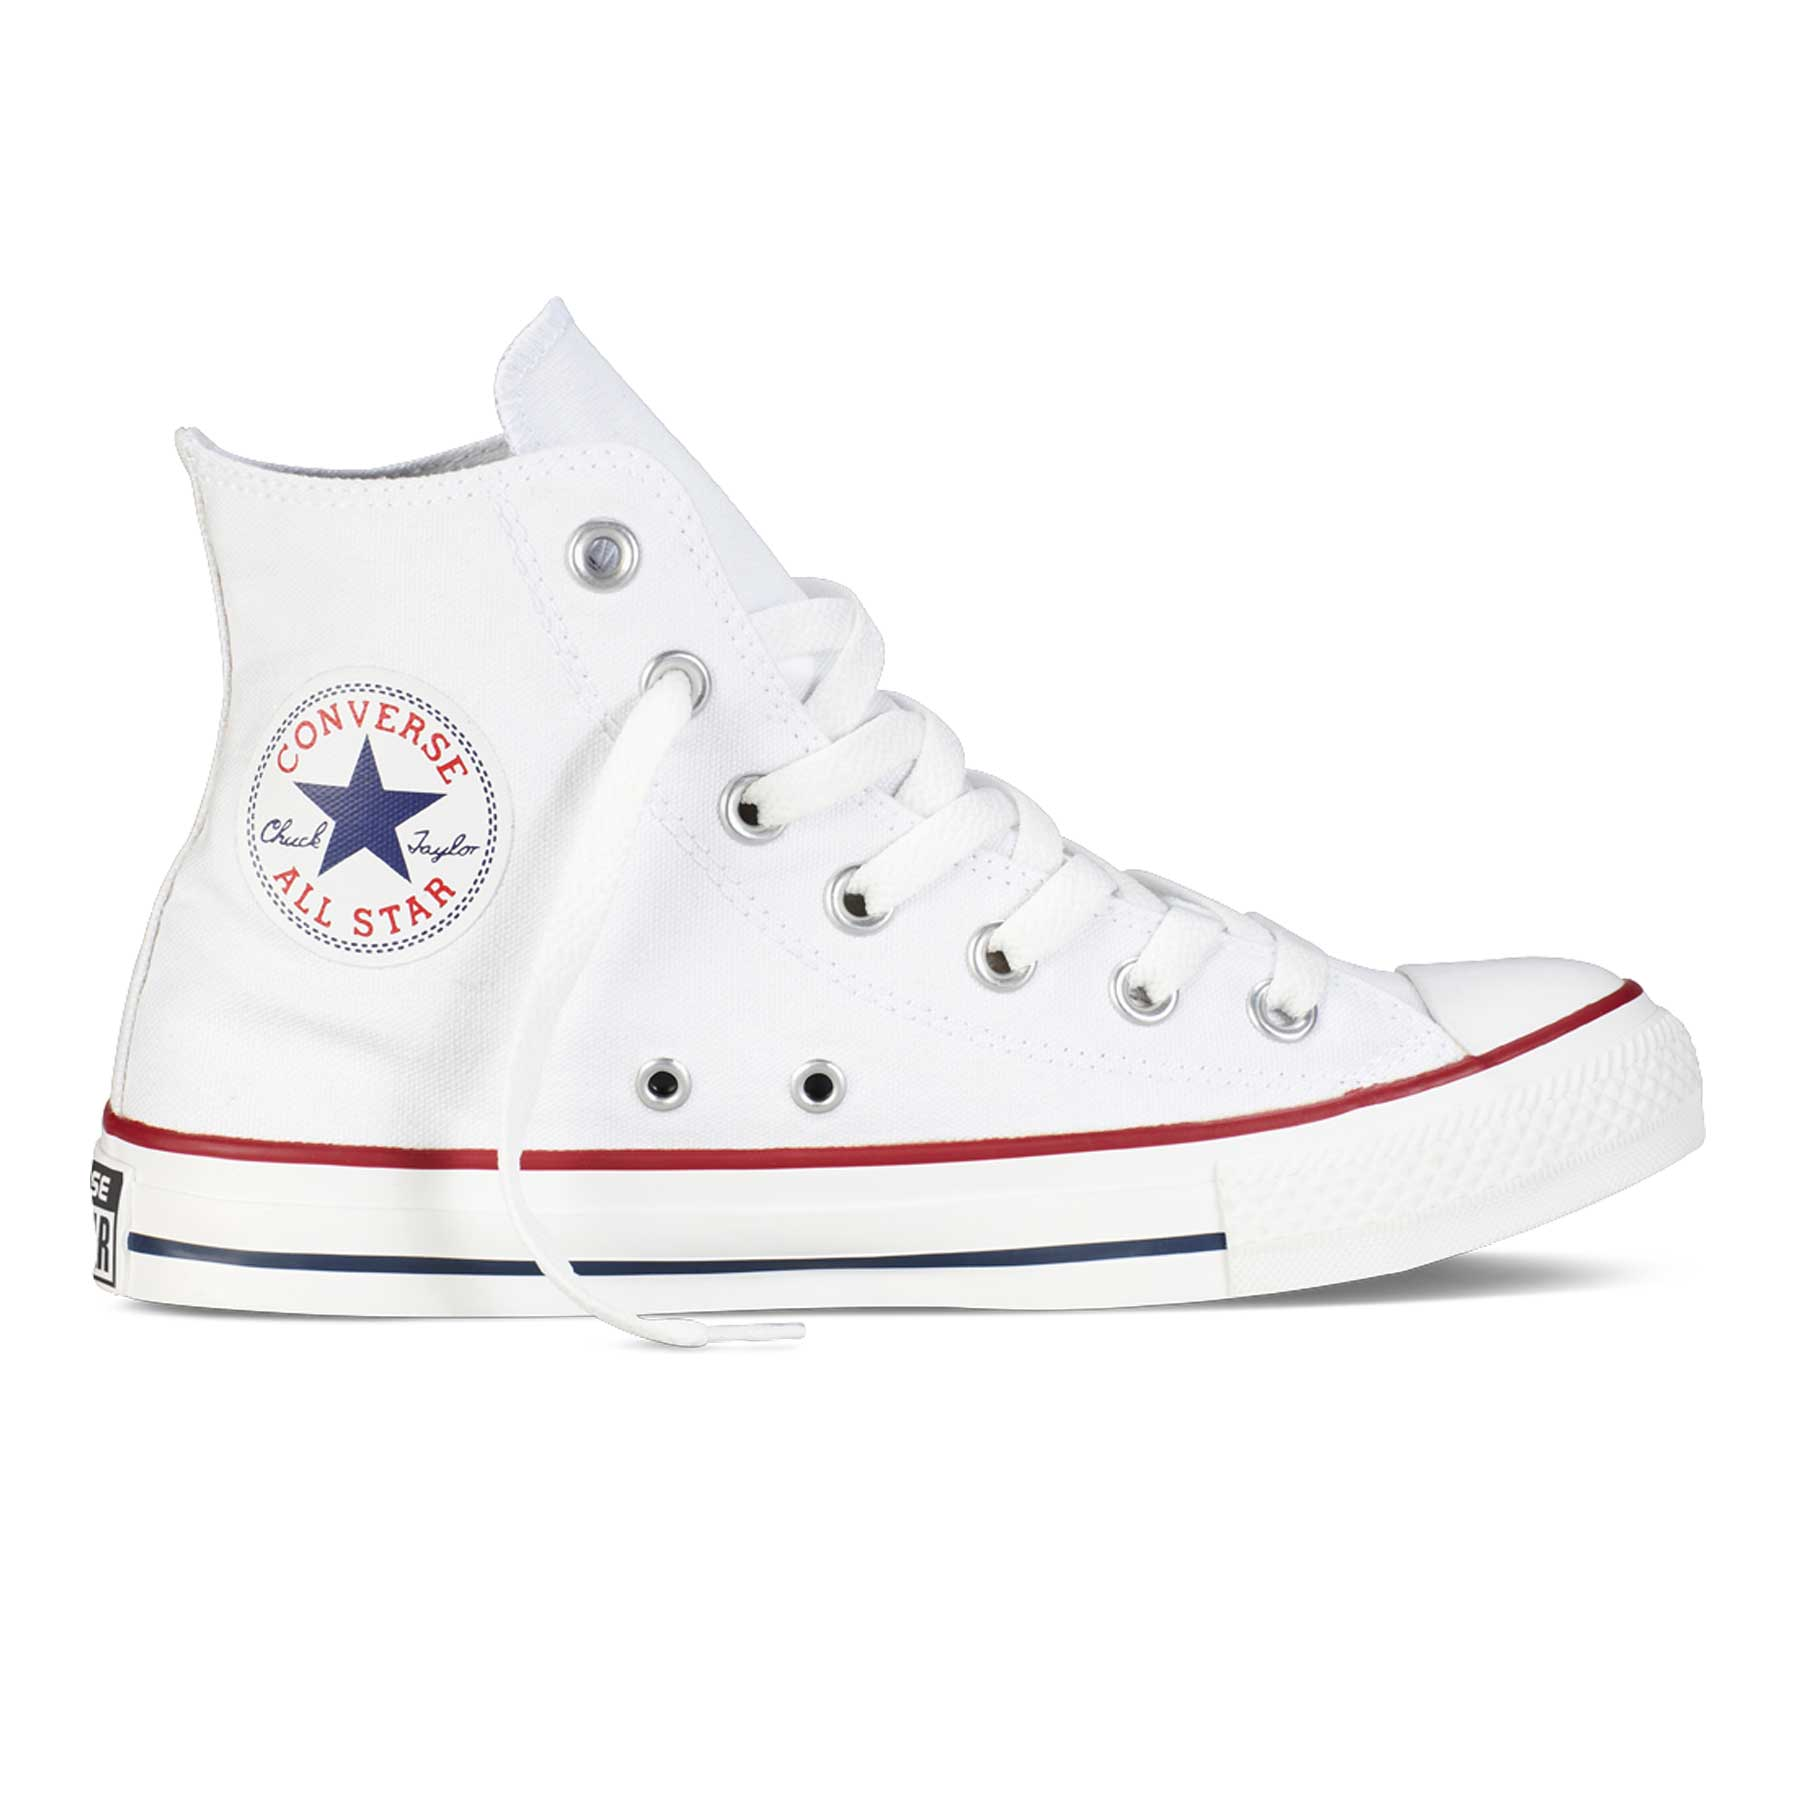 CHUCK TAYLOR ALL STAR HI BIANCHE